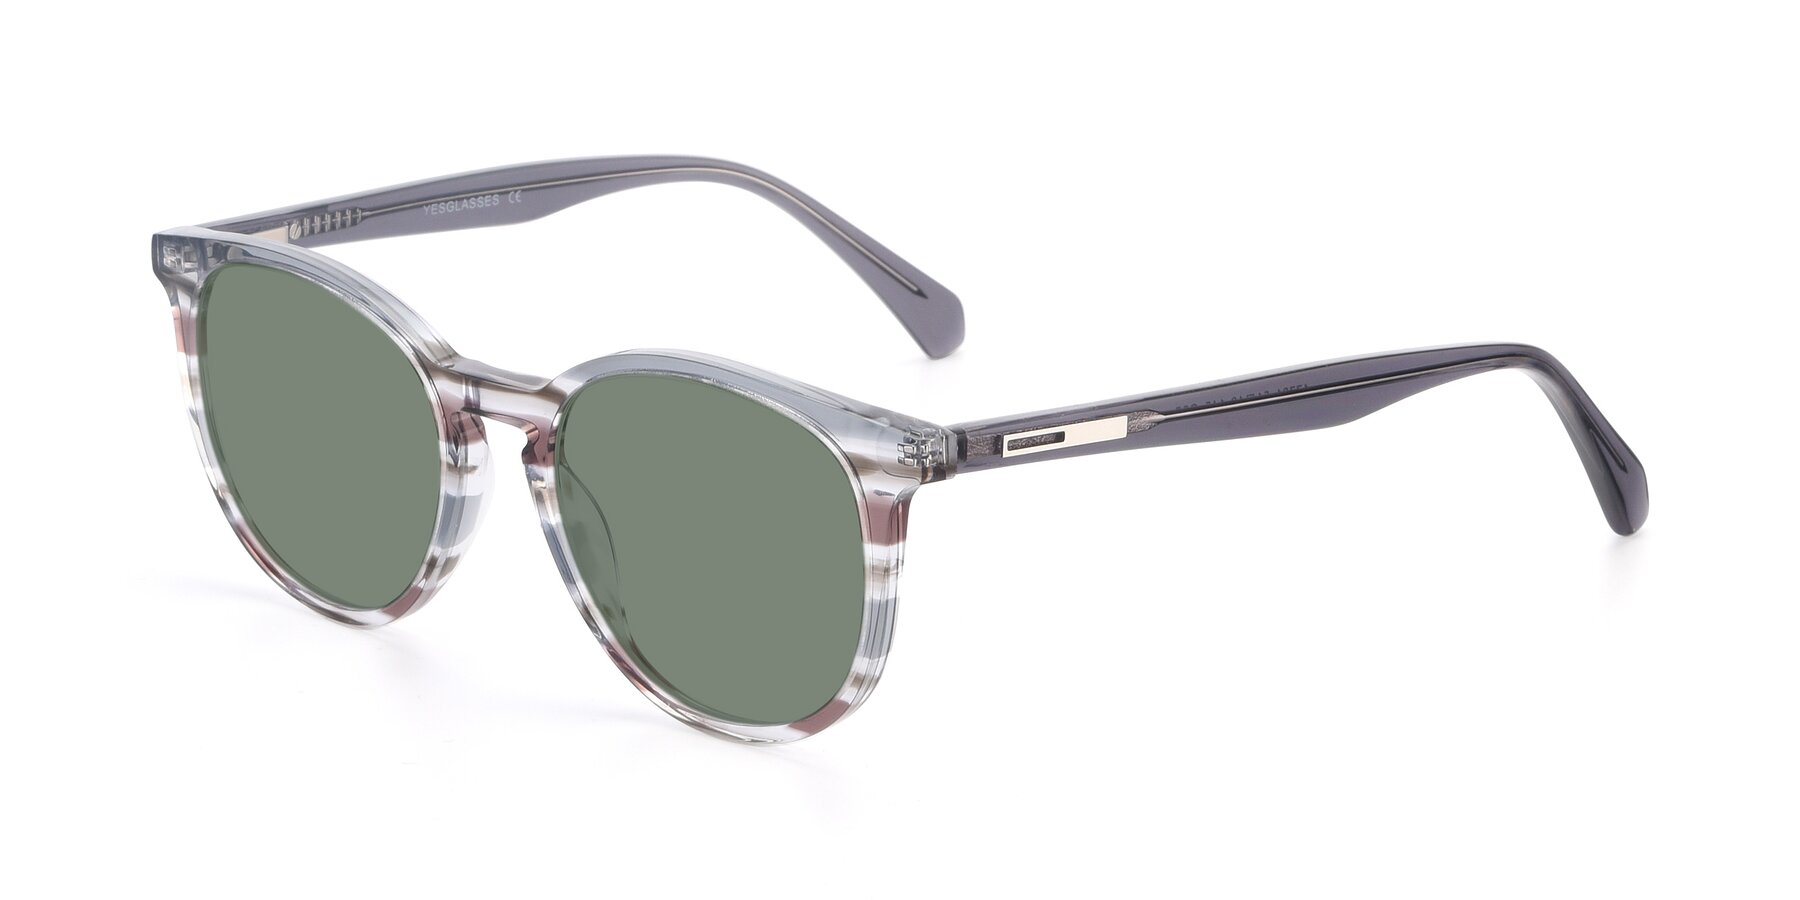 Angle of 17721 in Stripe Grey with Medium Green Tinted Lenses